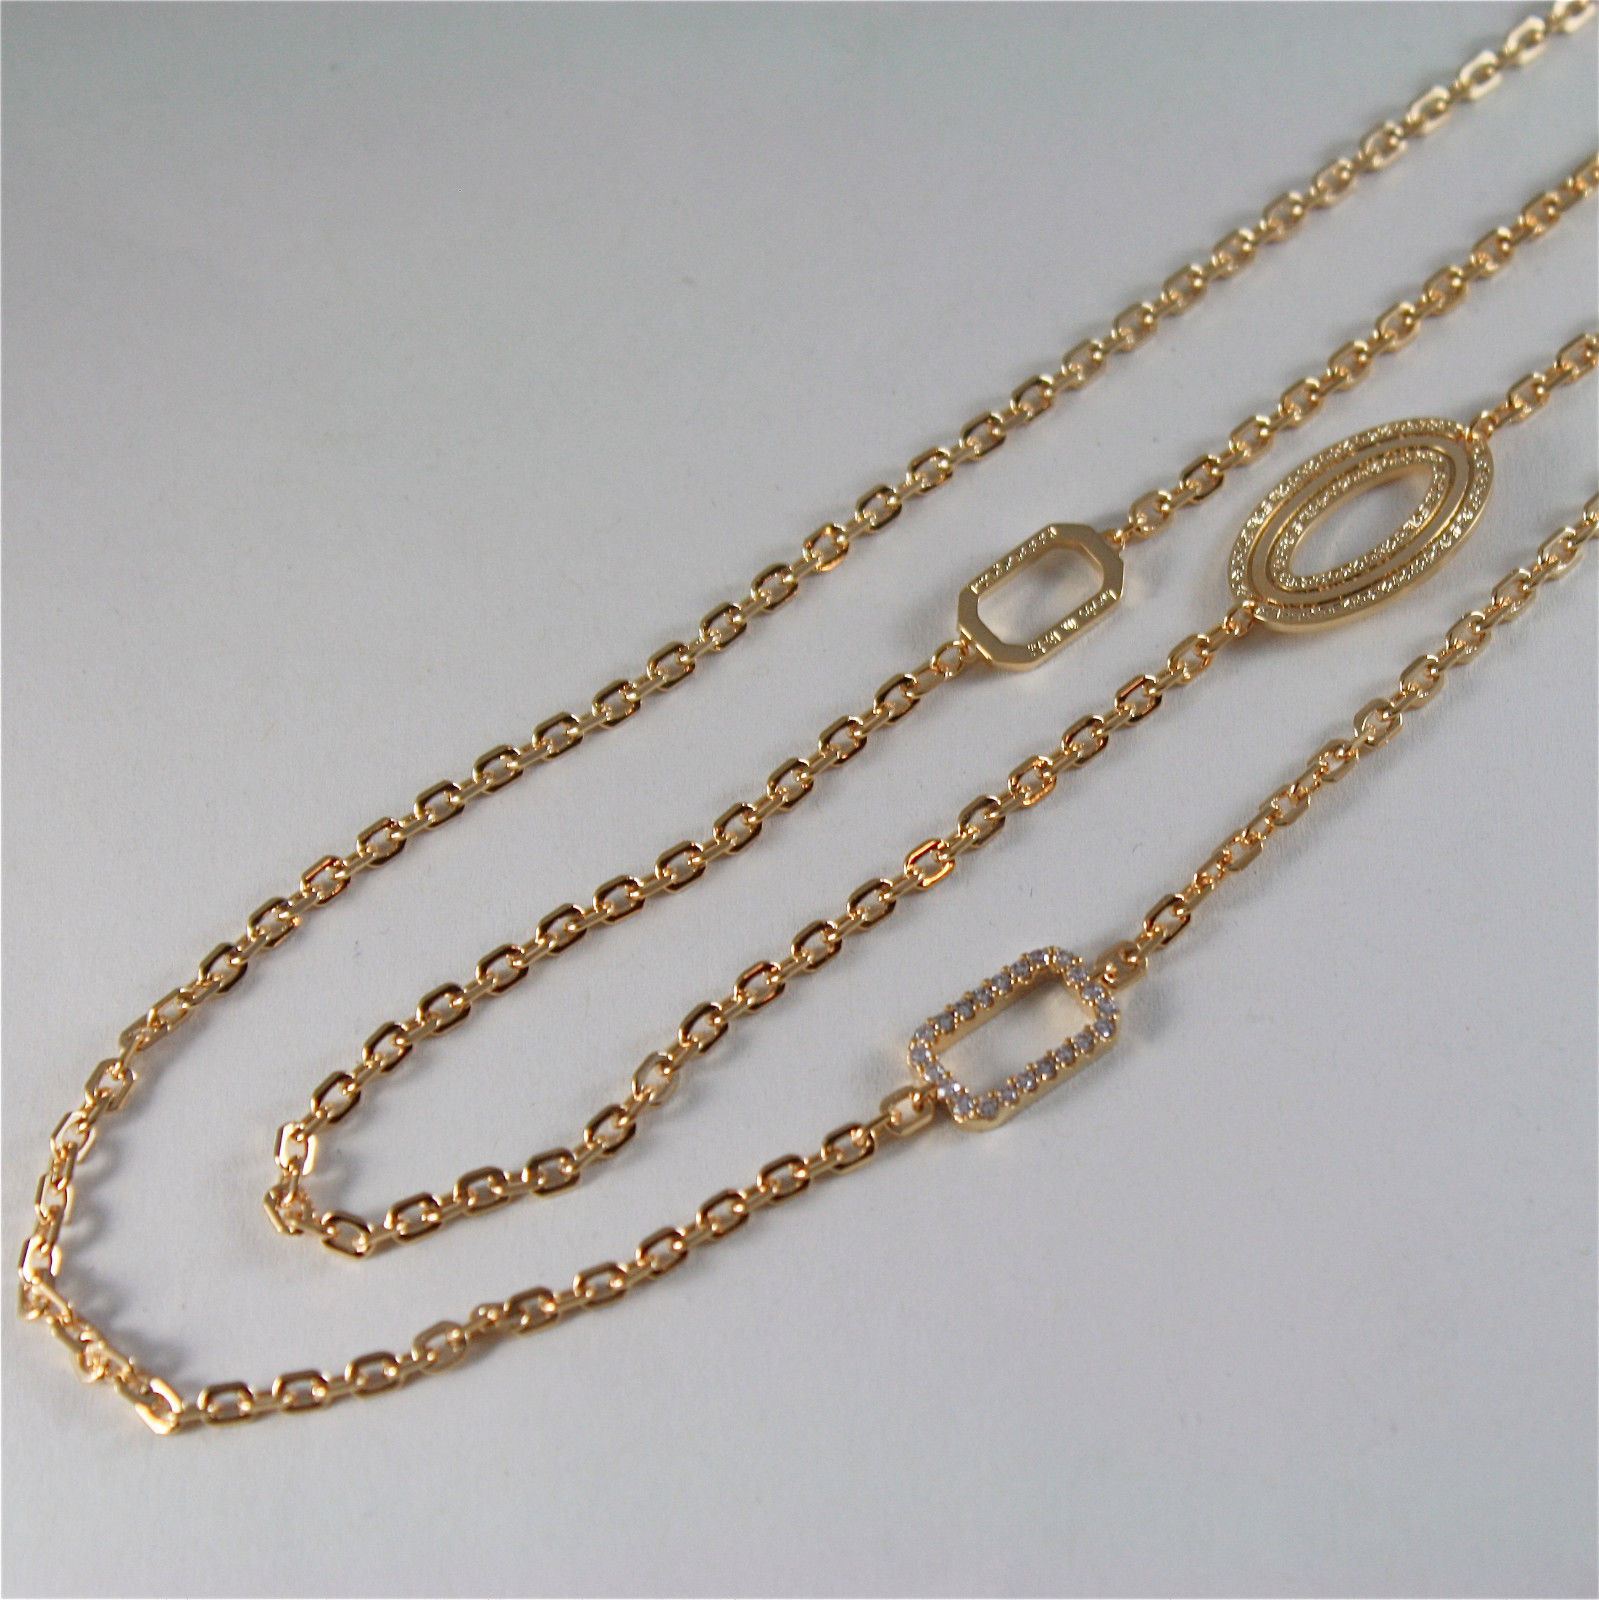 YELLOW GOLD PLATED BRONZE REBECCA NECKLACE ELIZABETH BELKOB05 MADE IN ITALY